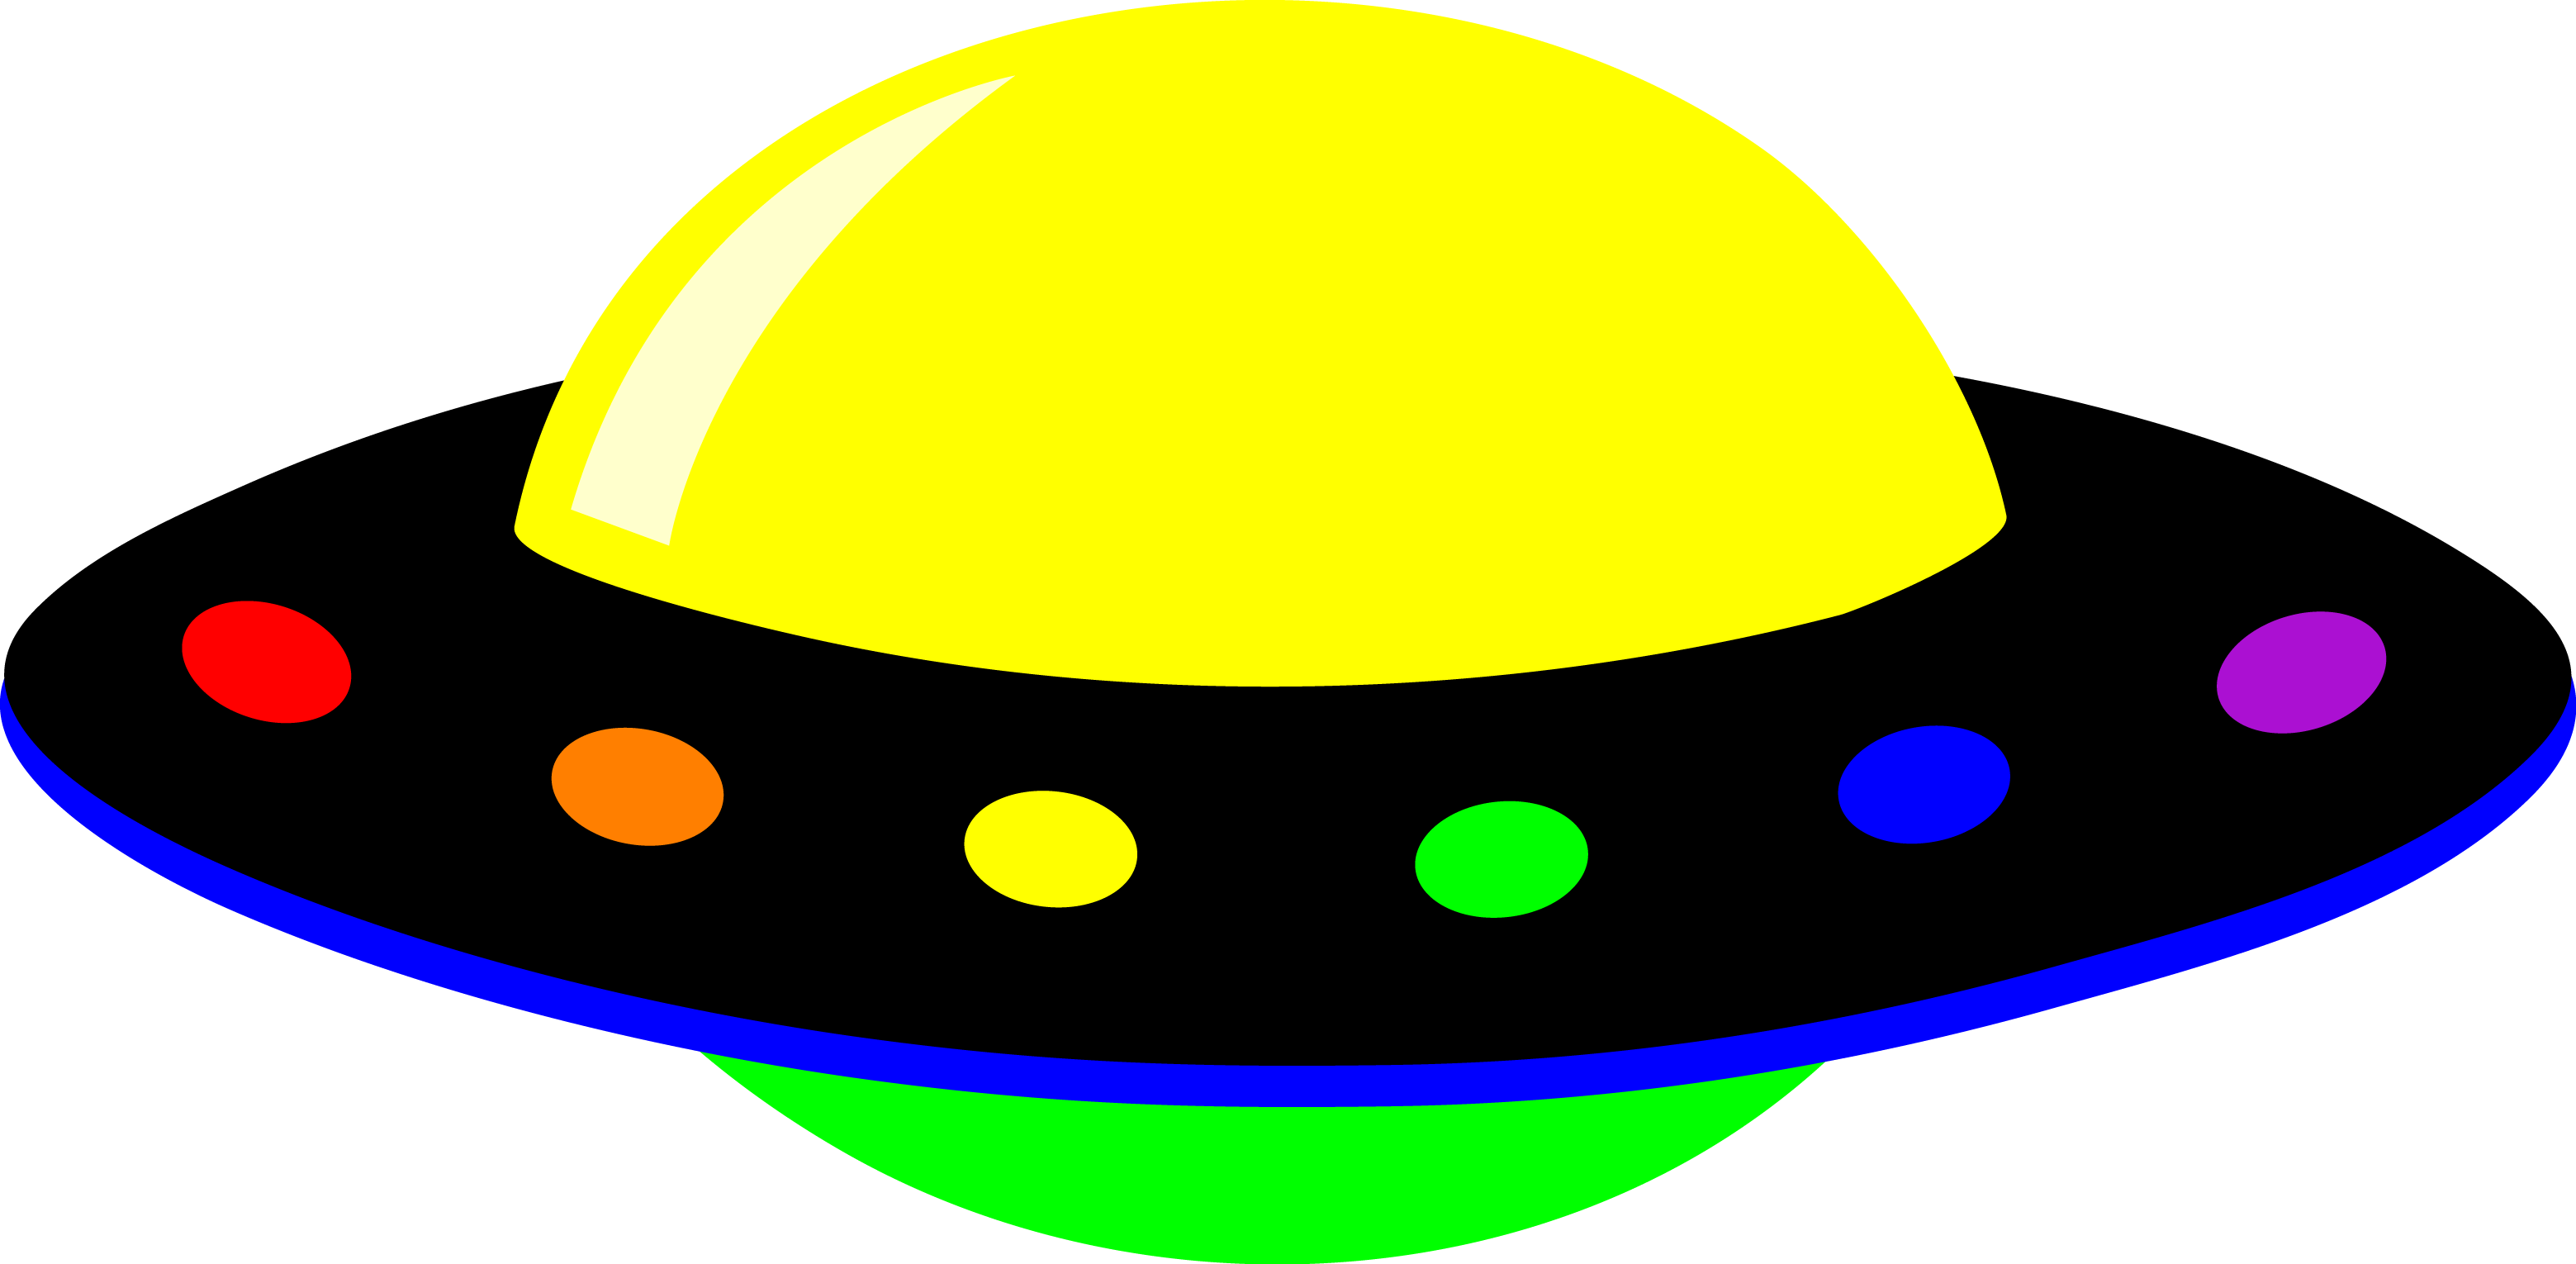 Spaceship 20clipart | Clipart Panda - Free Clipart Images: www.clipartpanda.com/categories/spaceship-20clipart